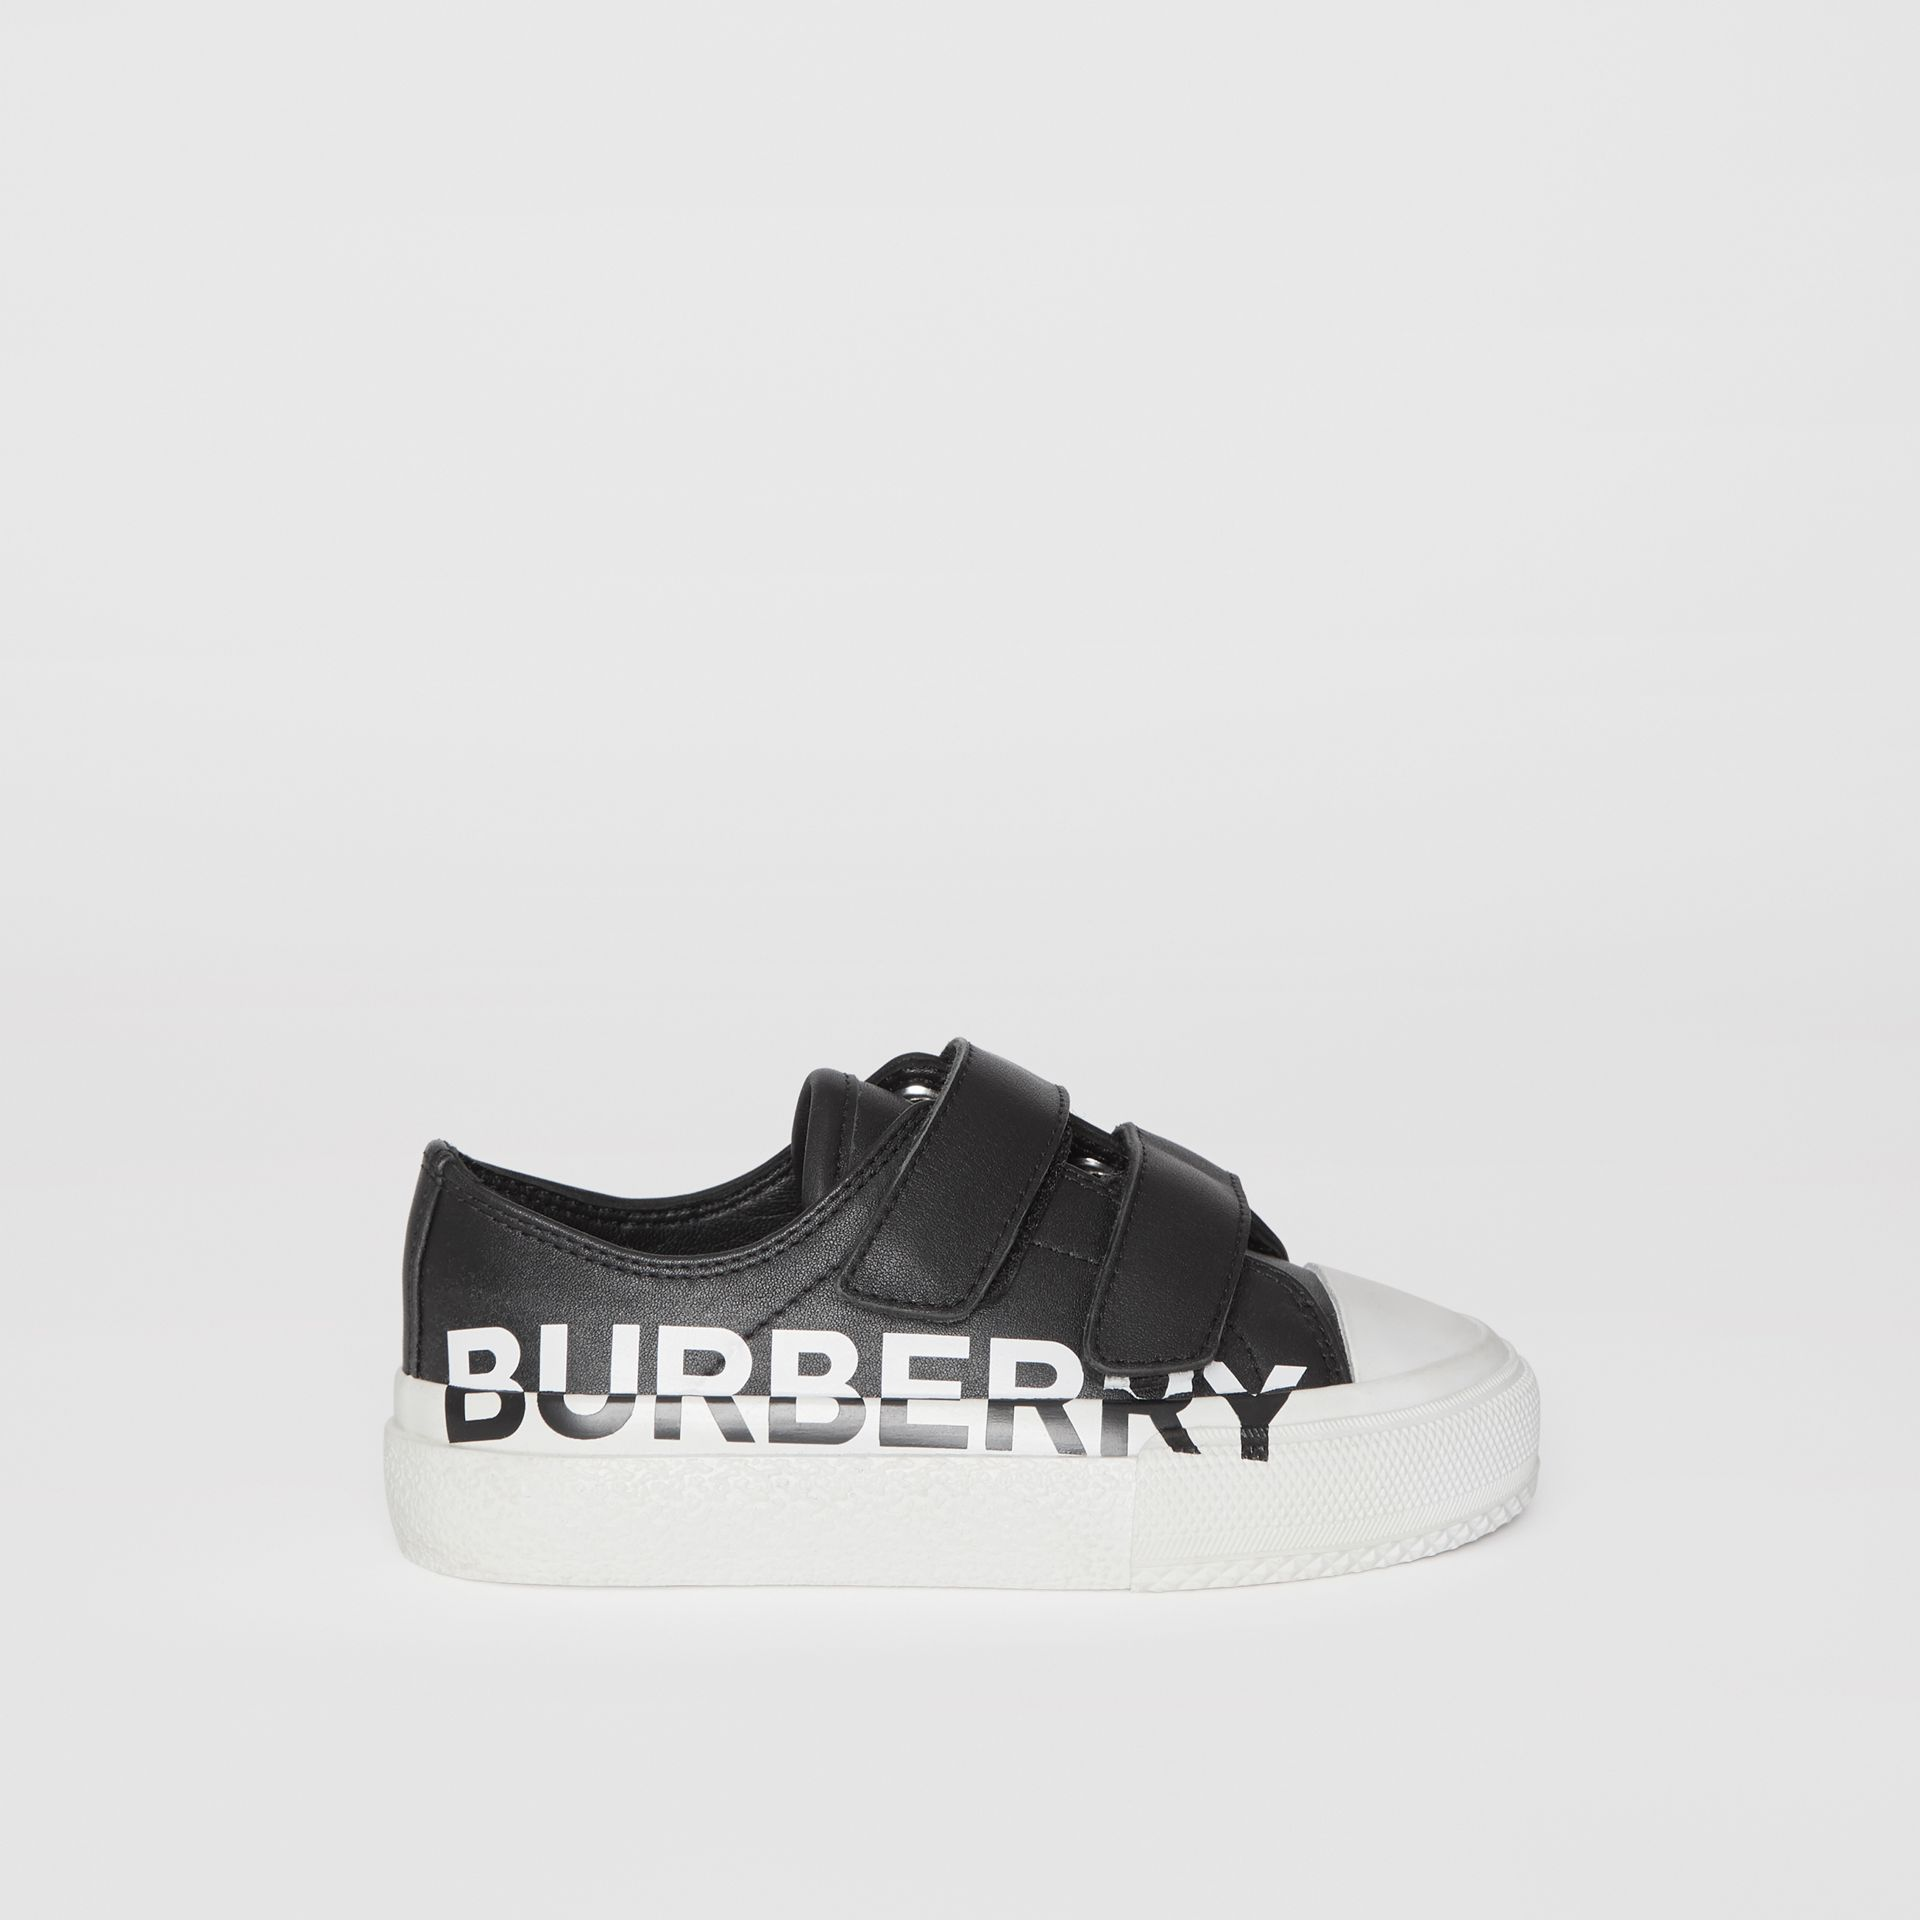 Logo Print Two-tone Leather Sneakers in Black/white - Children | Burberry - gallery image 3